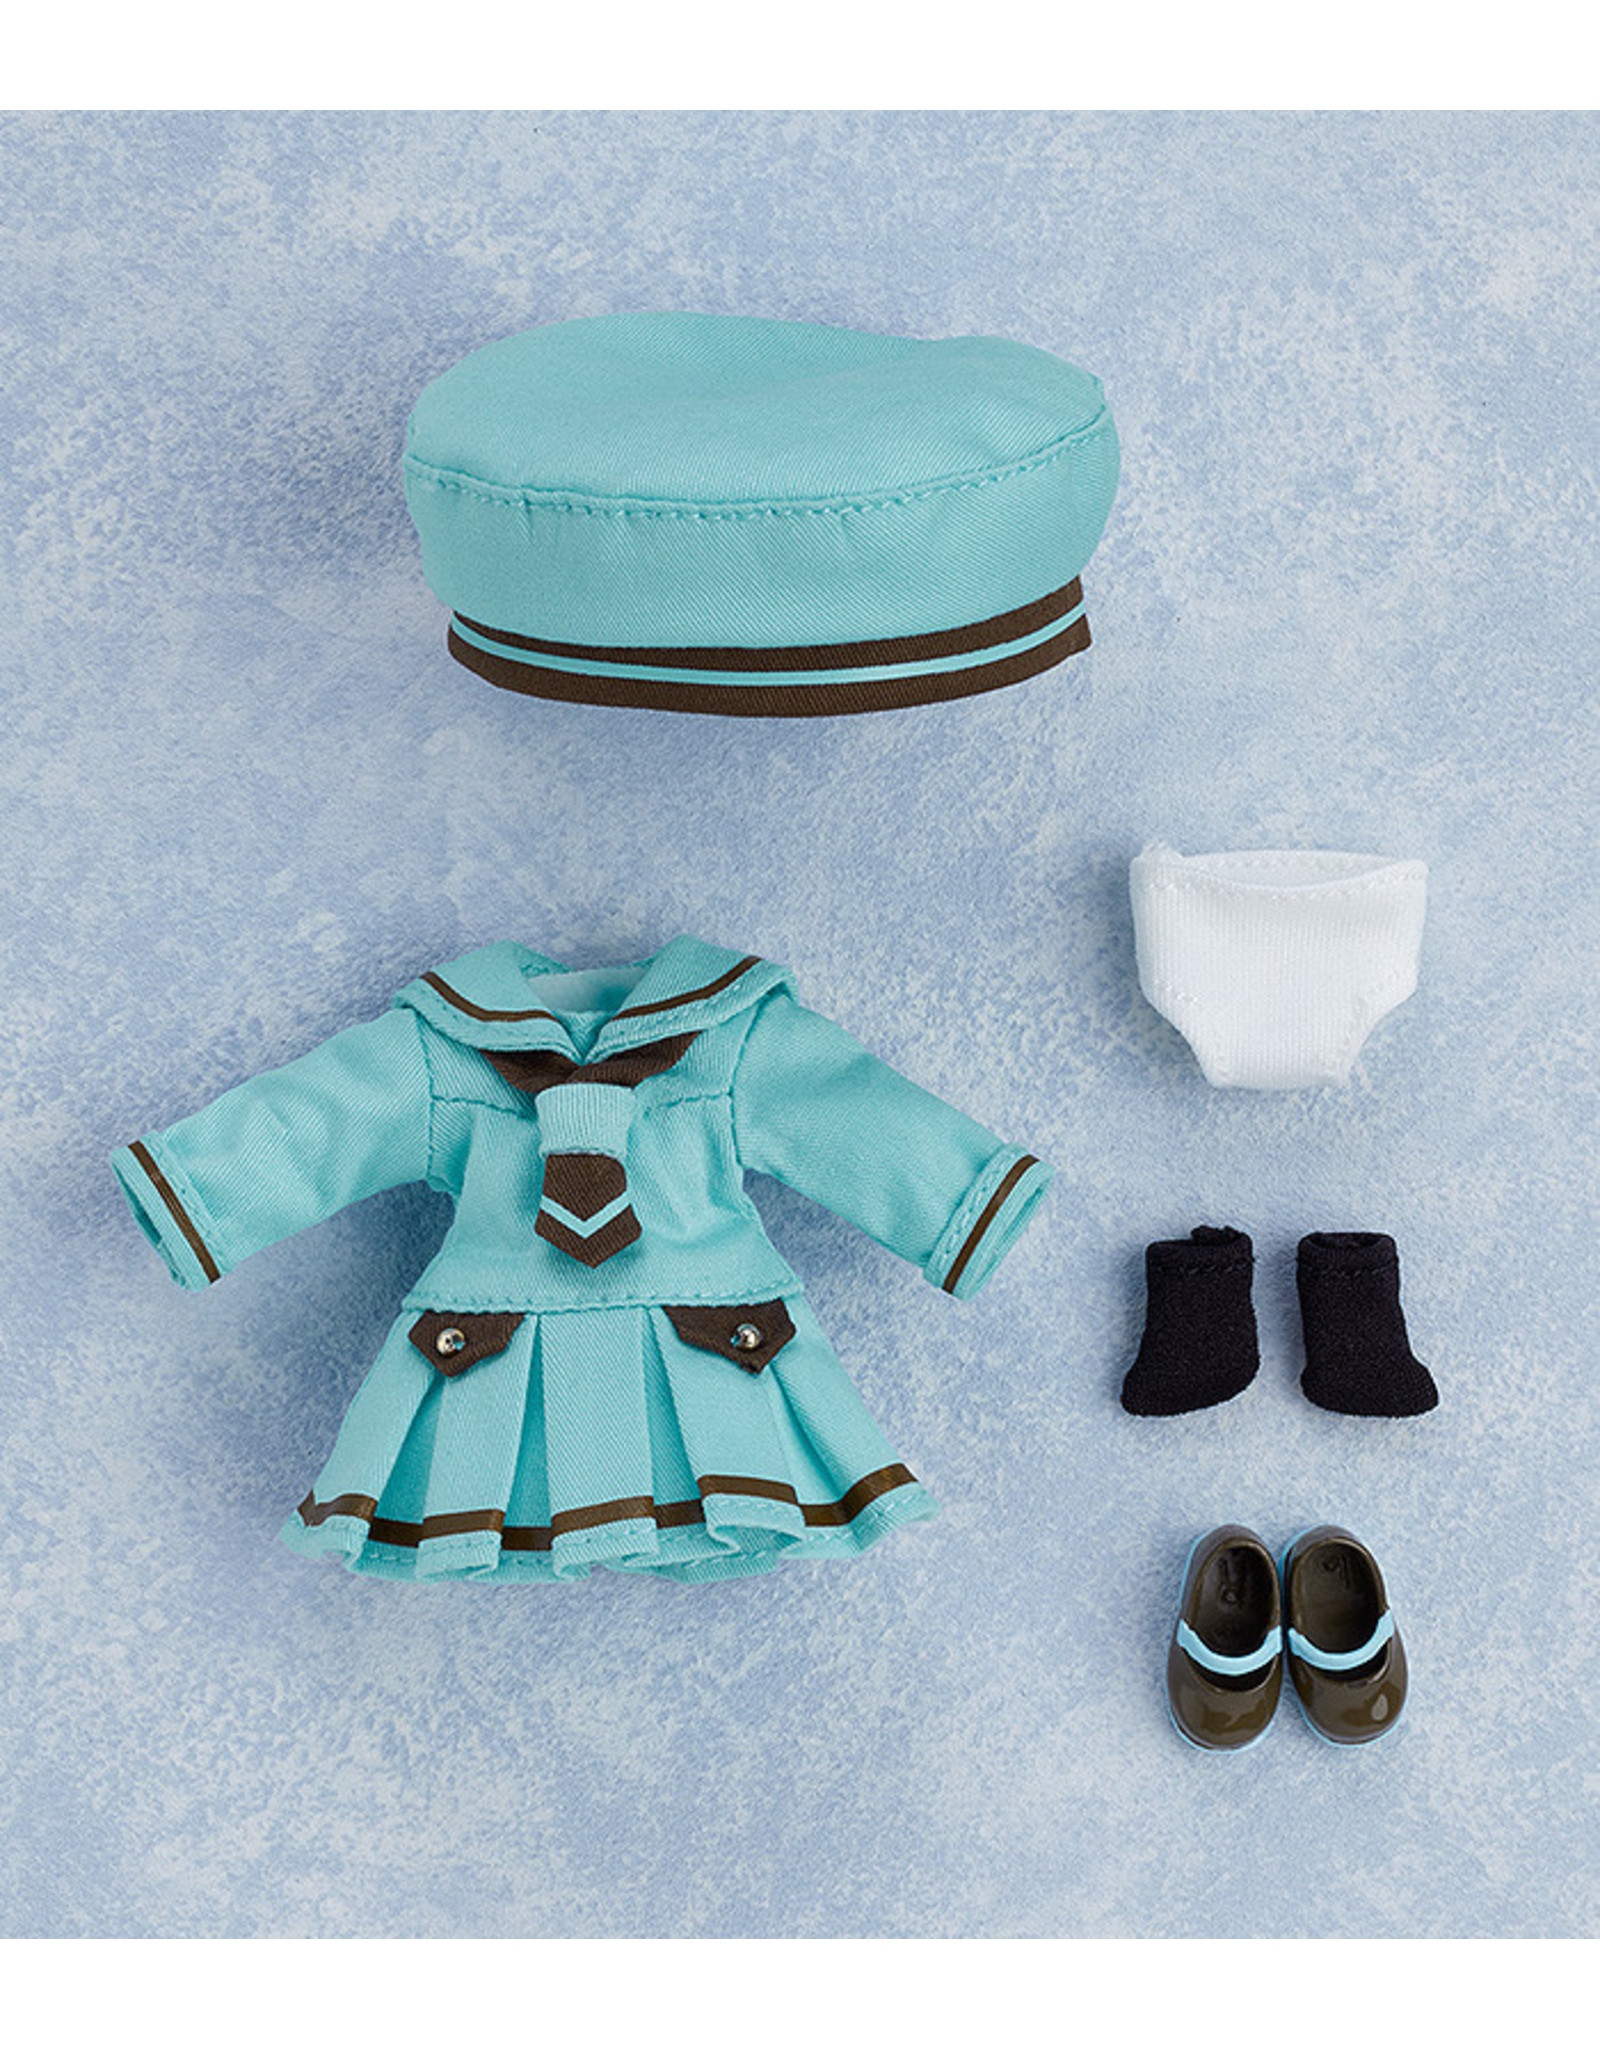 Nendoroid Doll Outfit Sailor Girl- Mint Chocolate